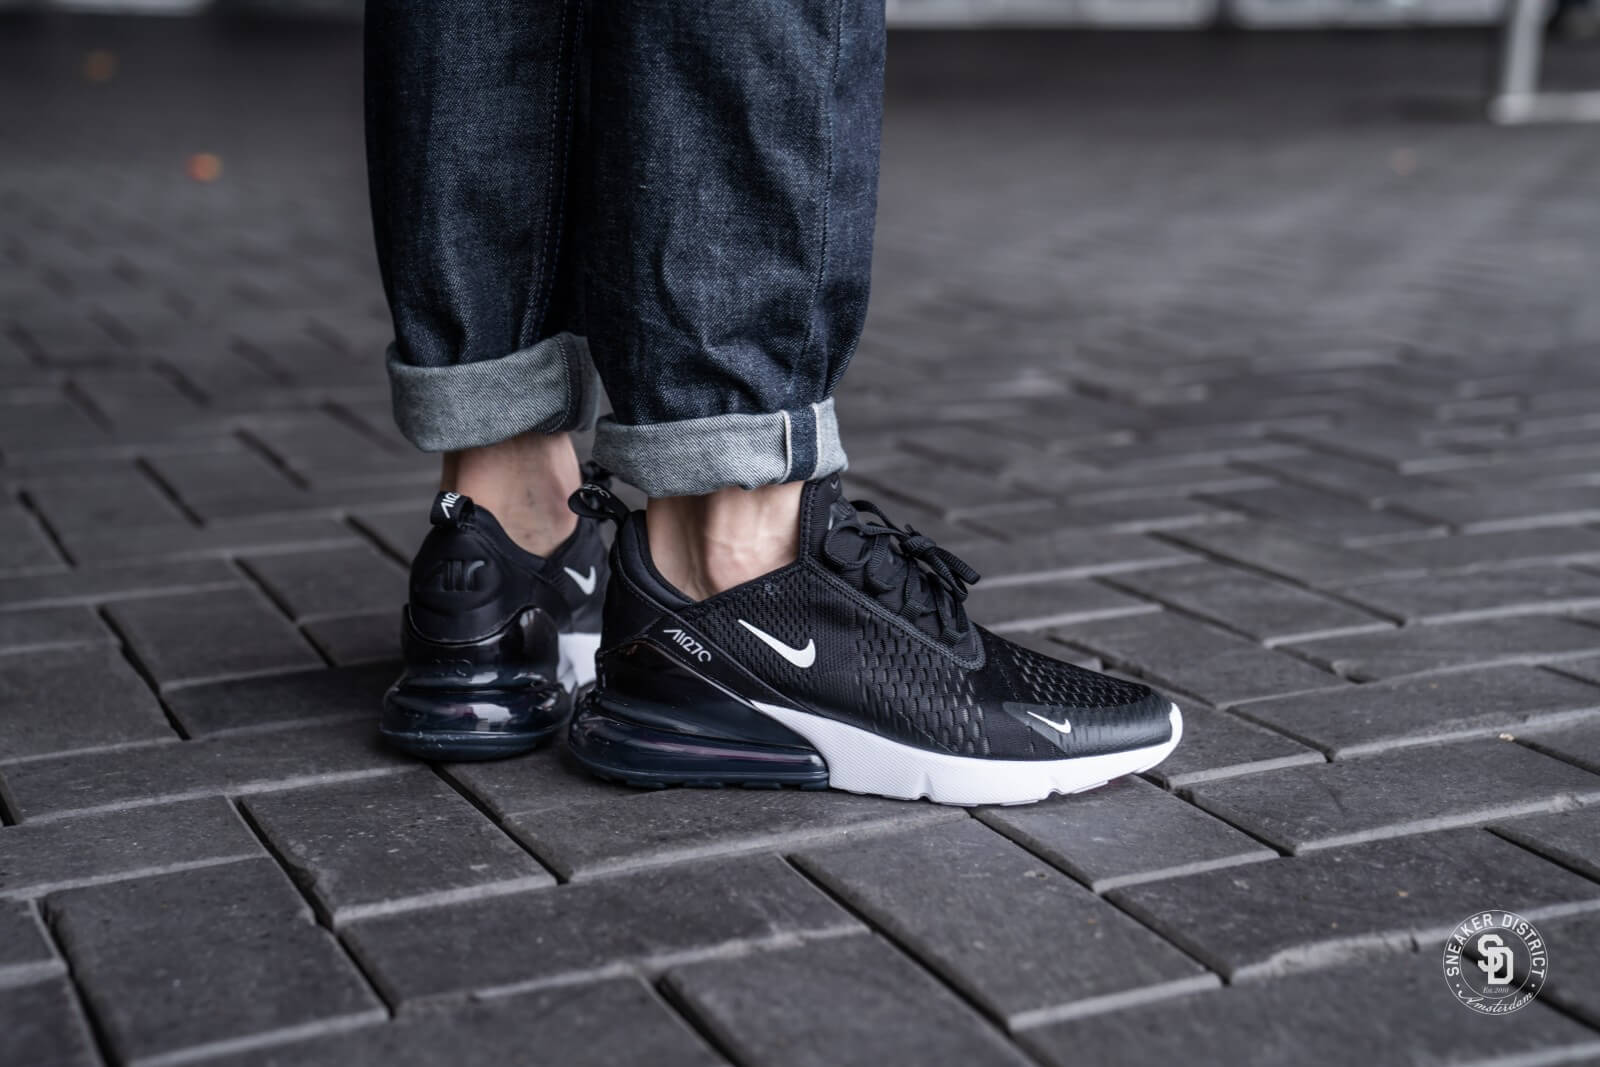 Nike Air Max 270 Black Anthracite White Solar Red Ah8050 002